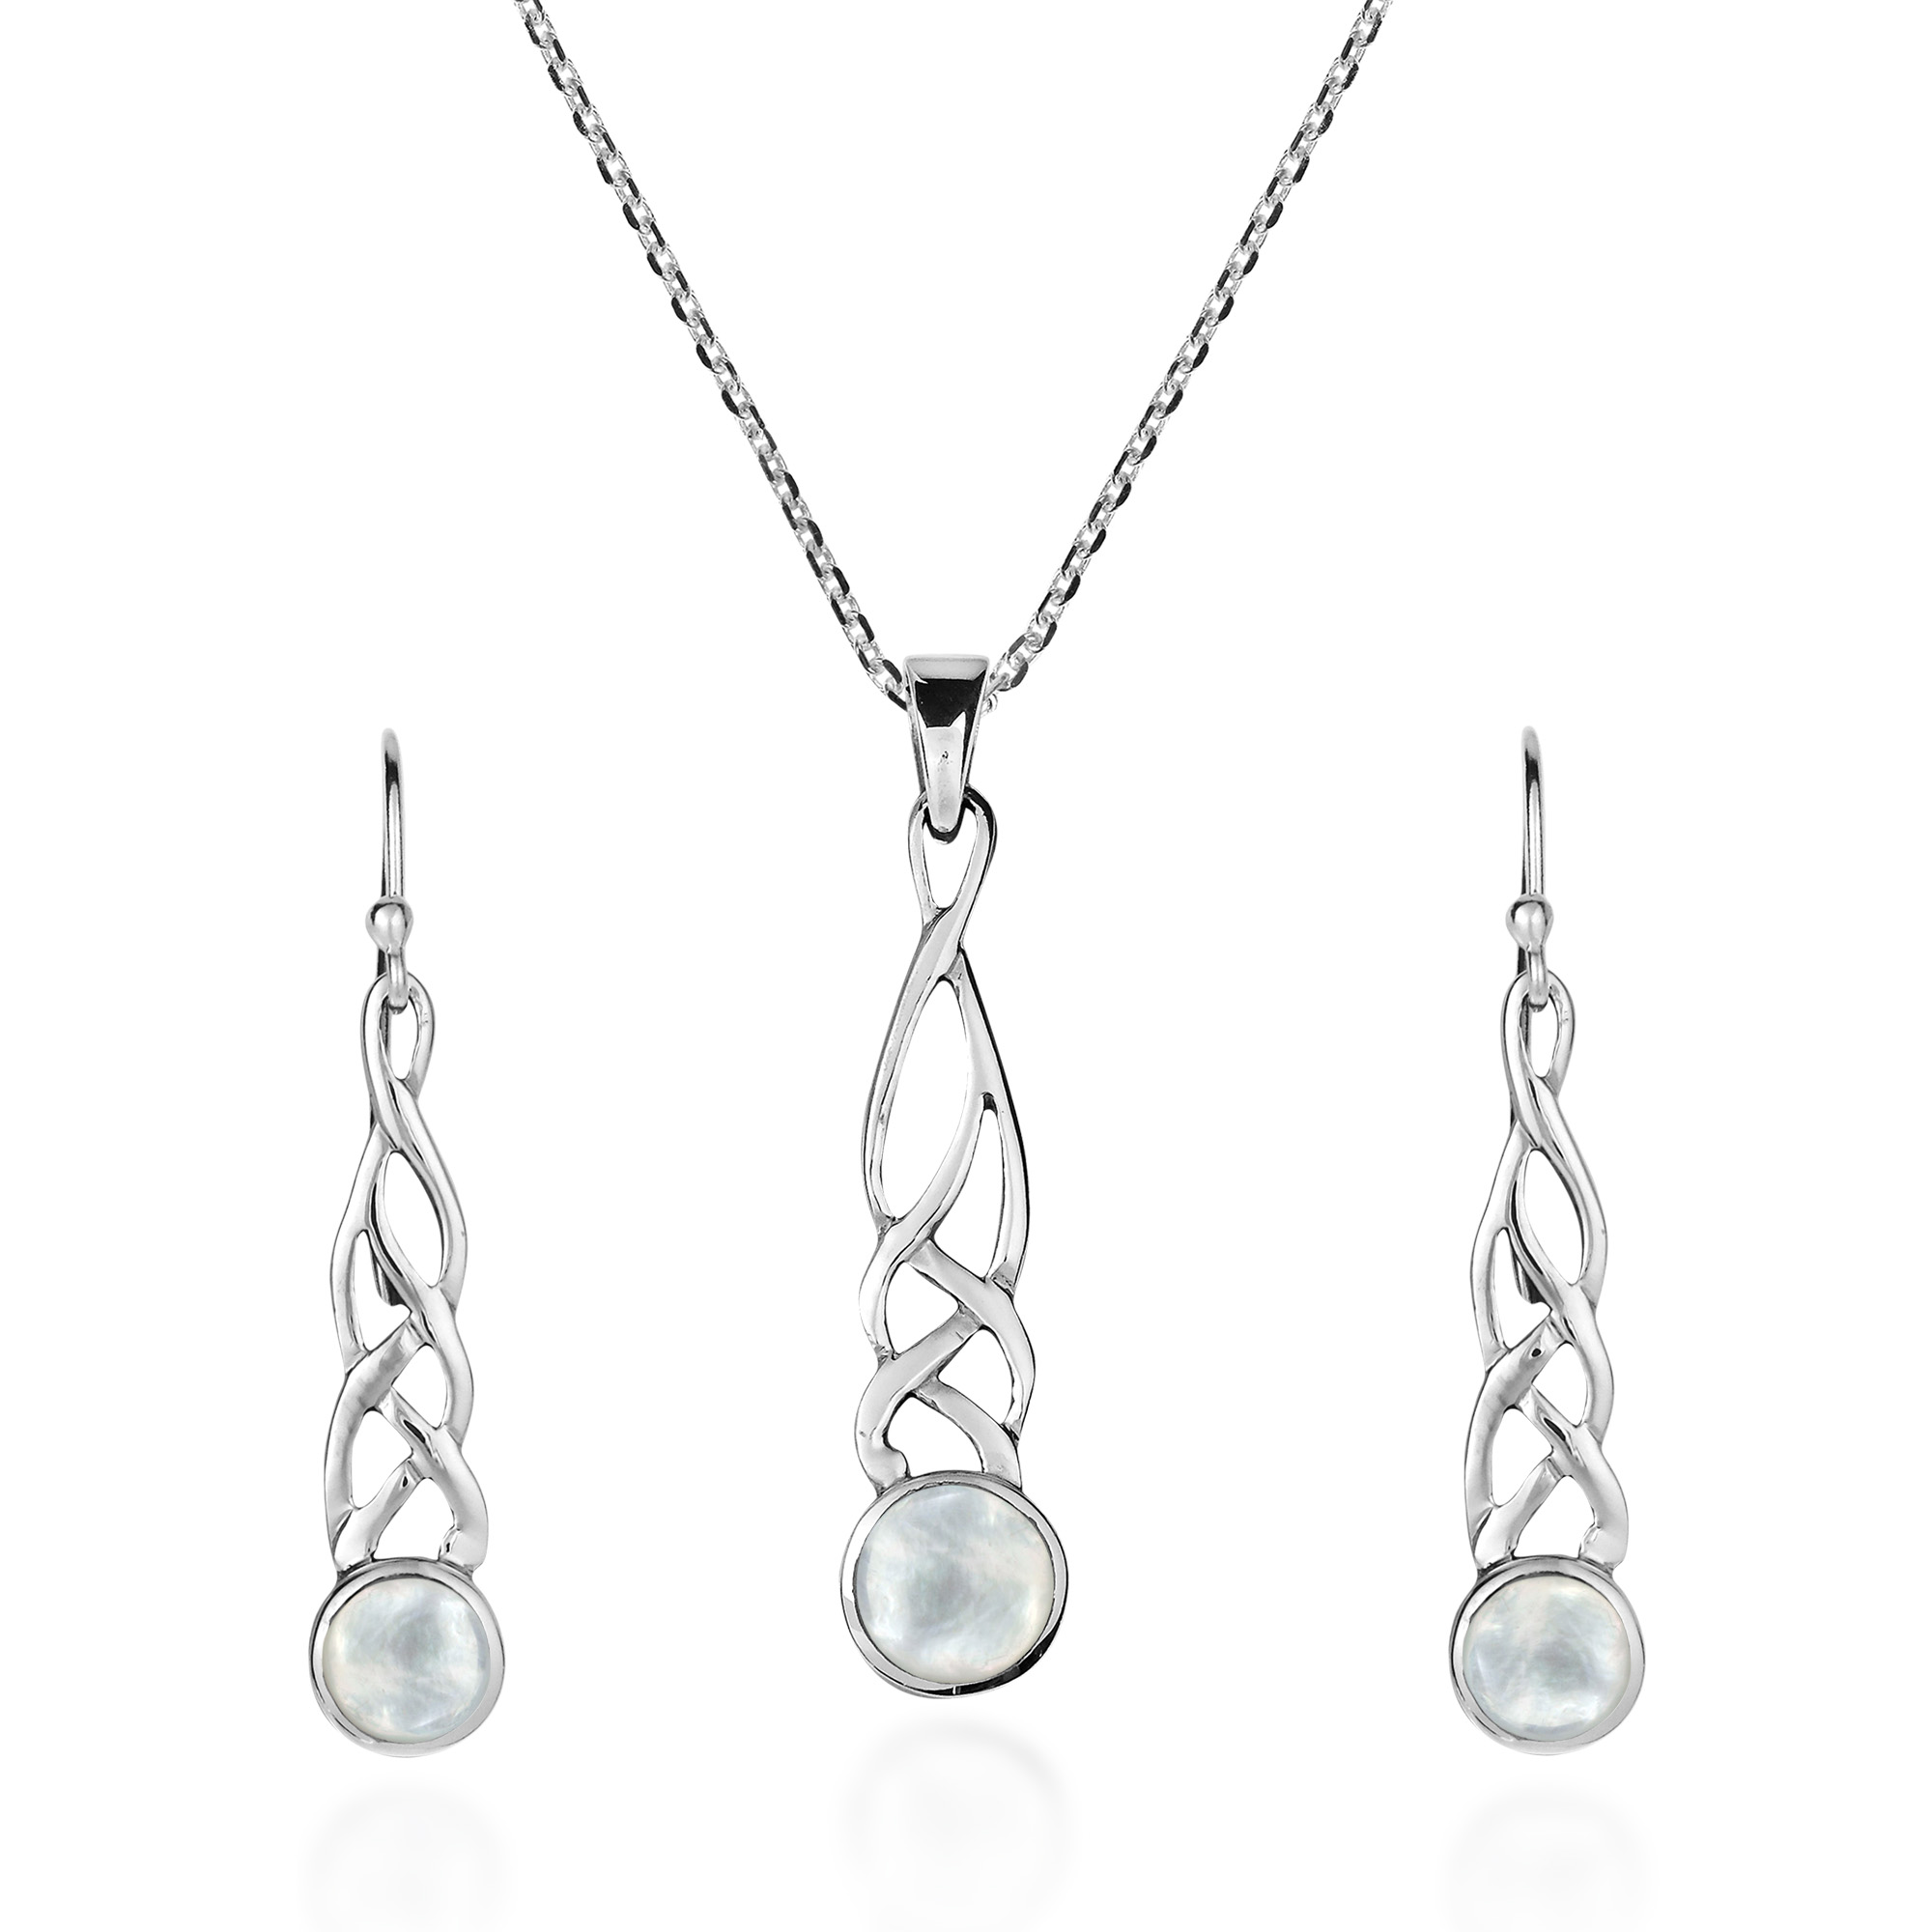 da7a68b3c Celtic Weave White Mother of Pearl Drop Sterling Silver Necklace Earrings  Set